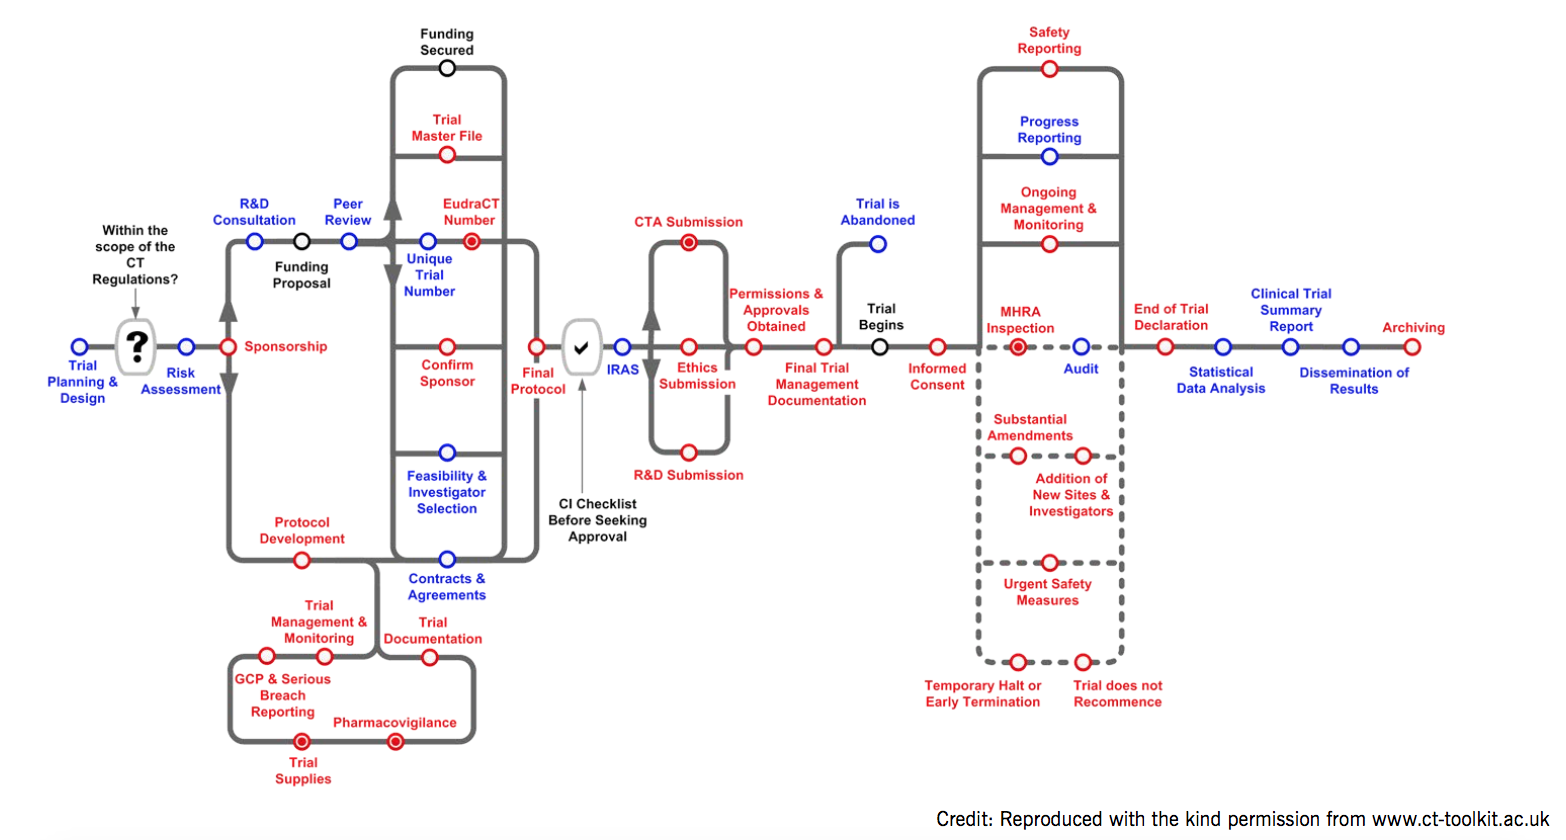 The complexity of a clinical trial: good practice requirements in blue and legal requirements in red. An informative pathway found on www.ct-toolkit.ac.uk/routemap